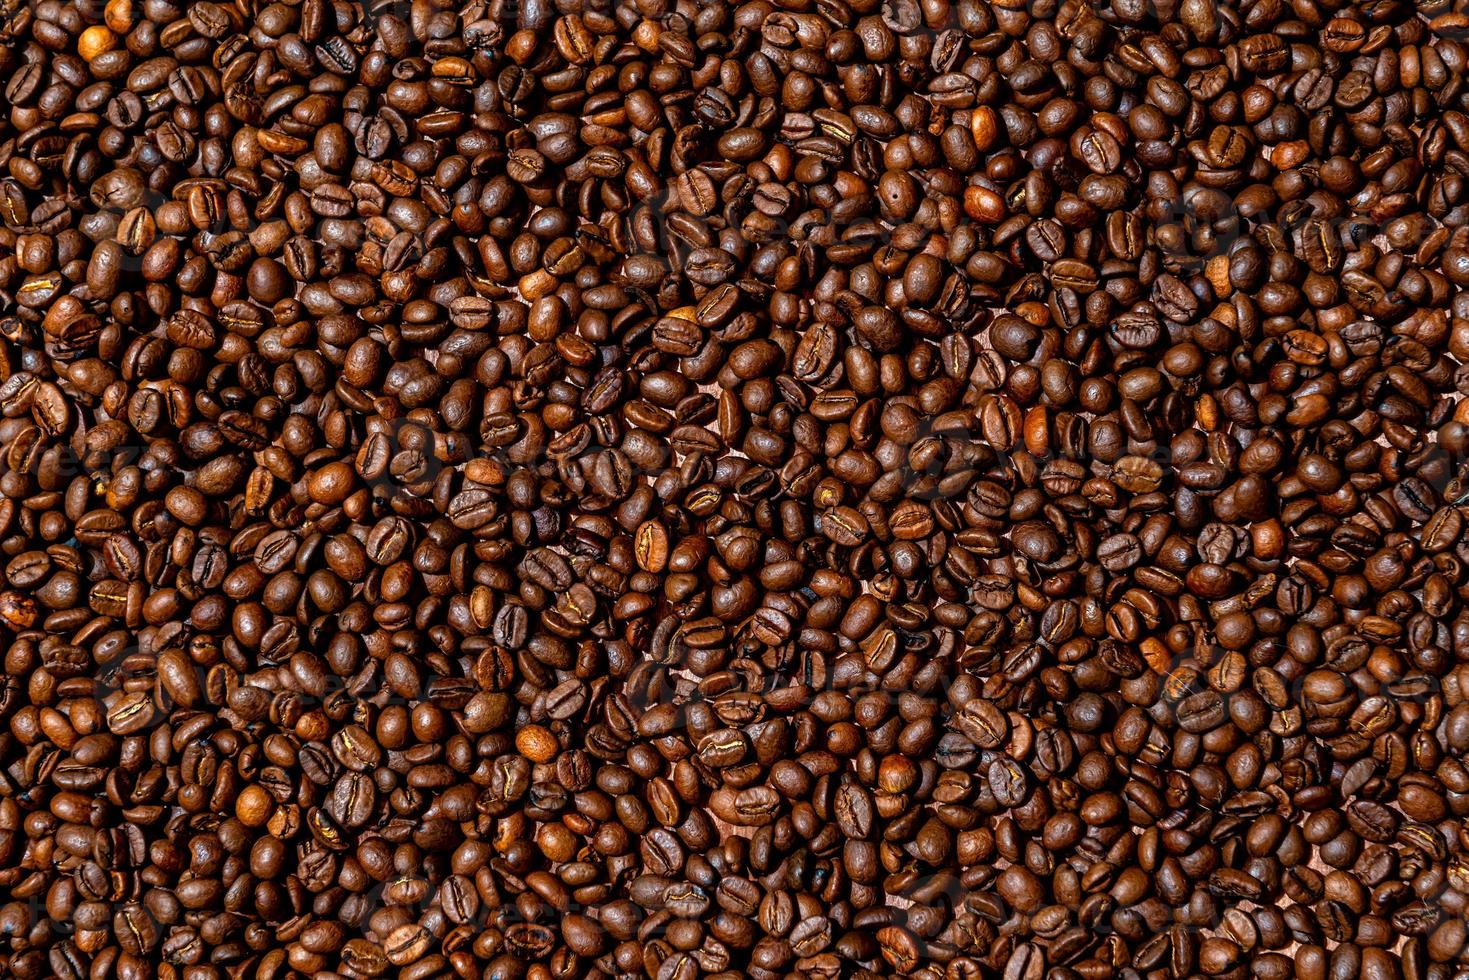 Close-up of brown, roasted coffee beans background photo